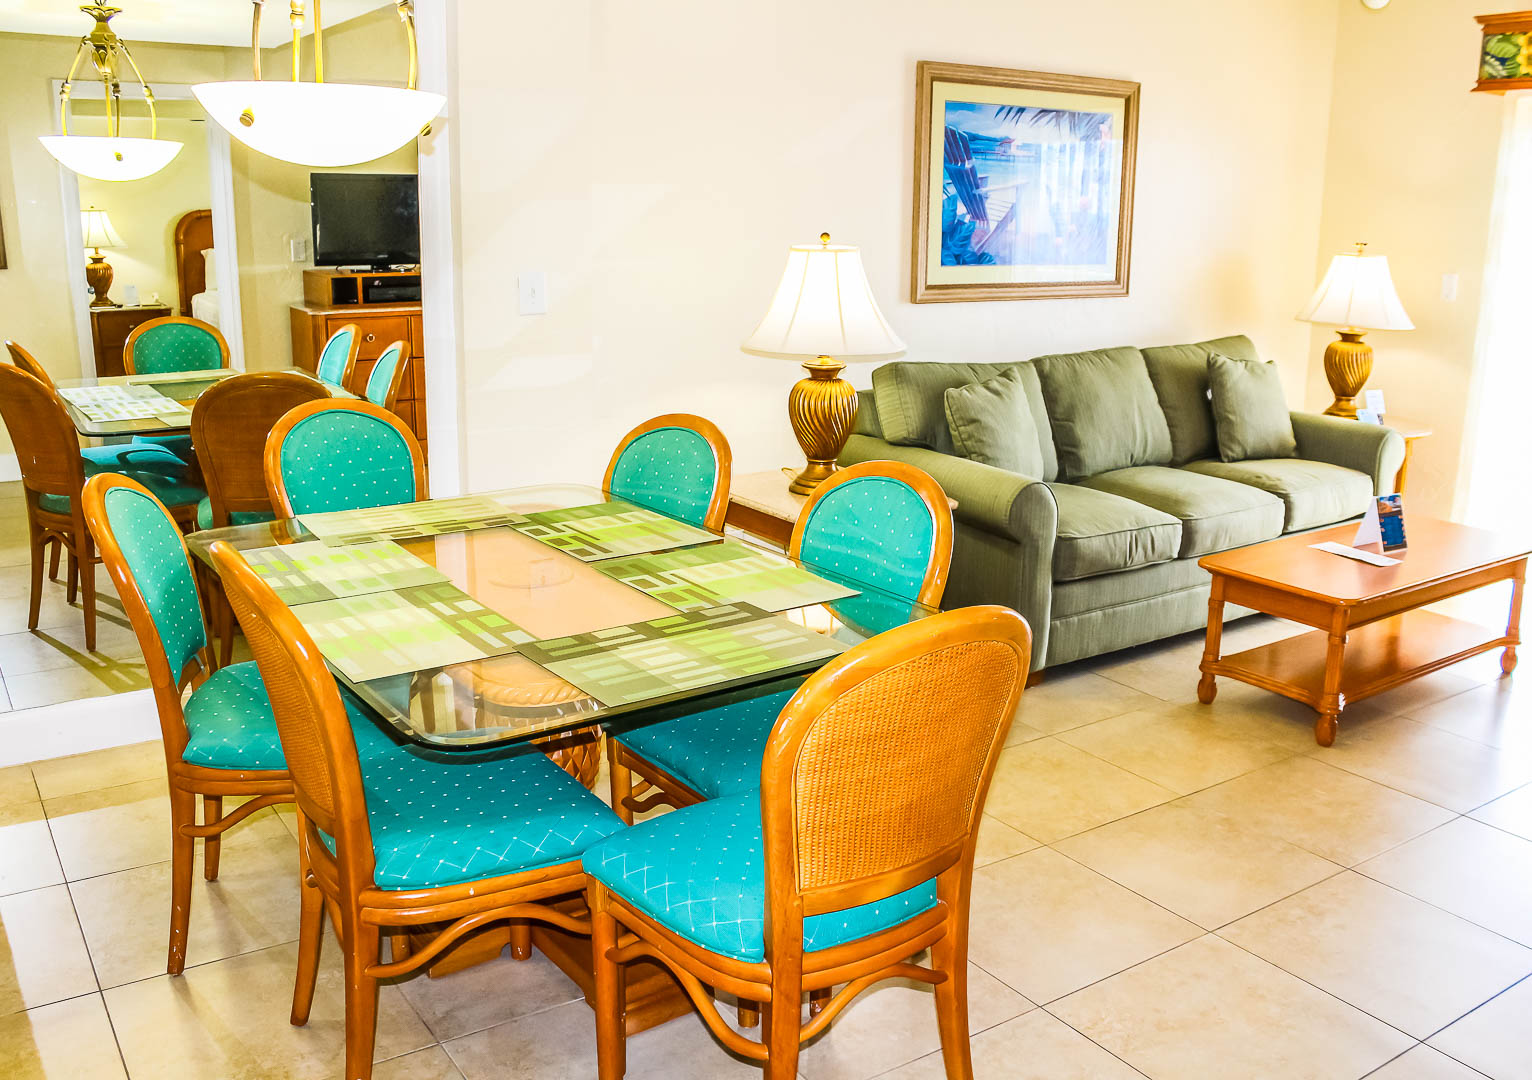 A vibrant living and dining area at VRI's Ft. Lauderdale Beach Resort in Florida.